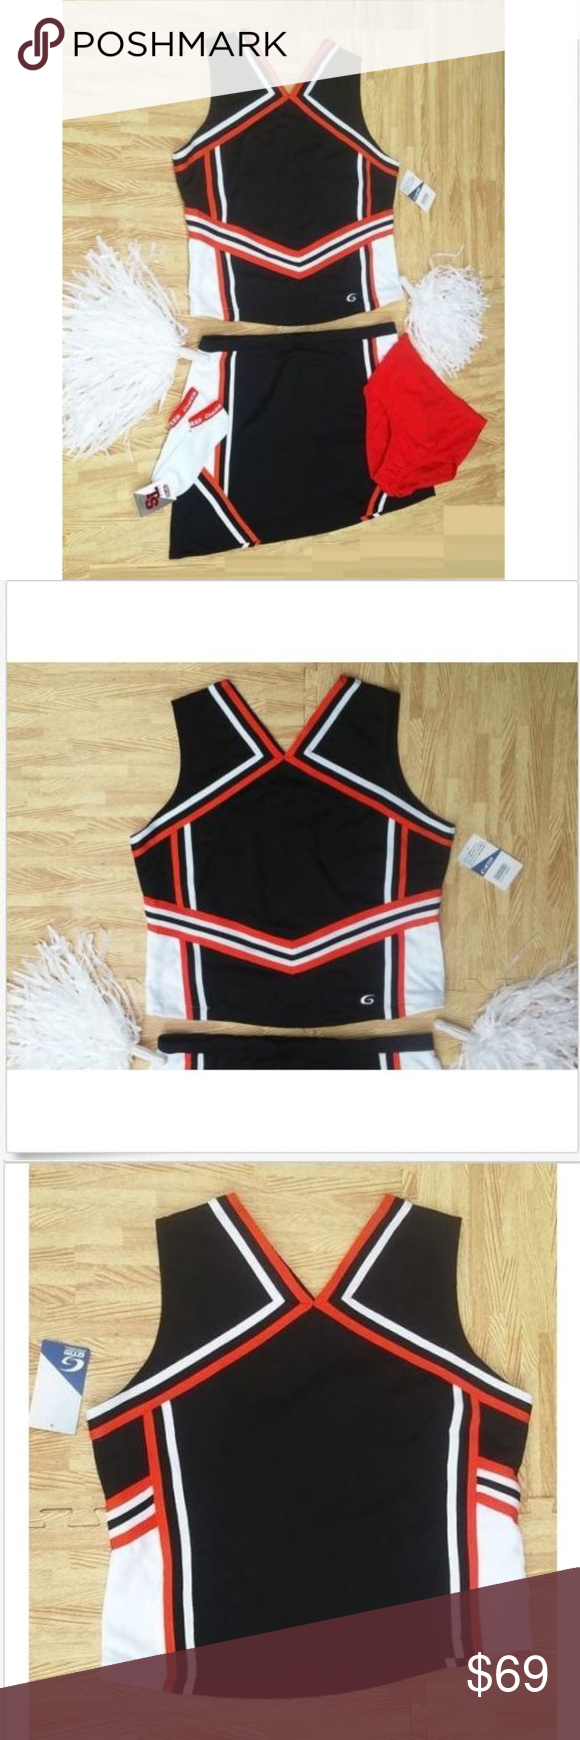 XXL CHEERLEADER UNIFORM CROP TOP SHELL SKIRT MORE BLACK ORANGE WHITE shell top pulls over the head, has a stretch back & contrasting braiding. V-cut neck & back. Tagged Women's 2XL. Chest measures 46